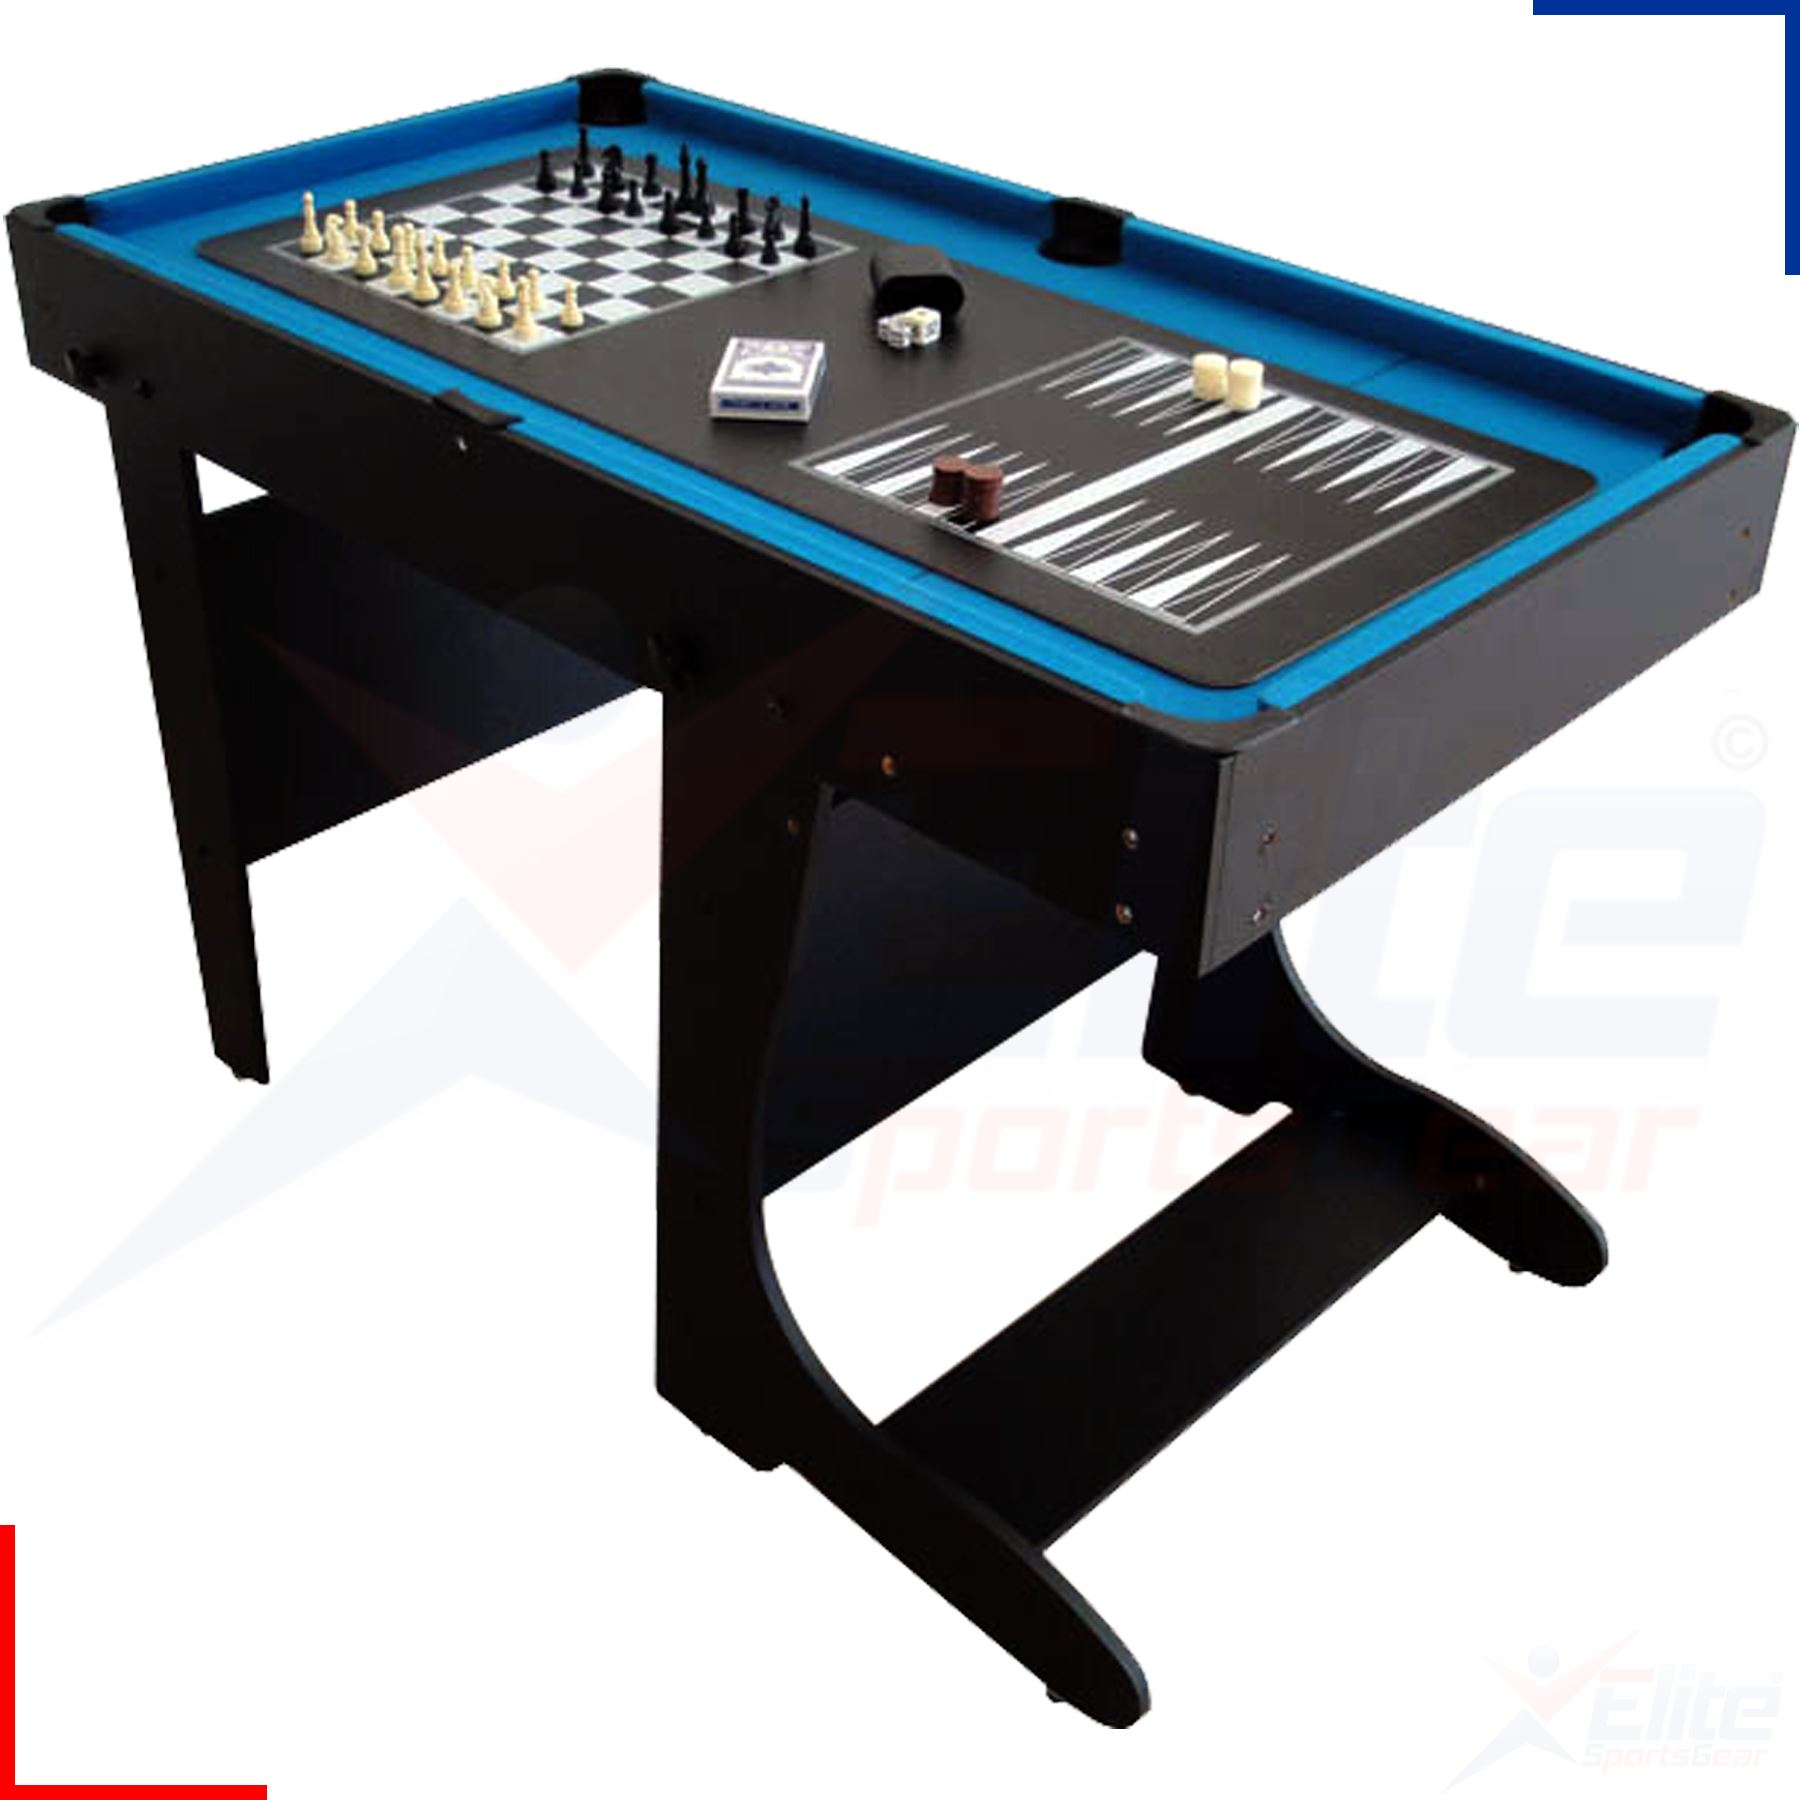 Bce 12 in 1 multi games table snooker football pool for 12 in one game table